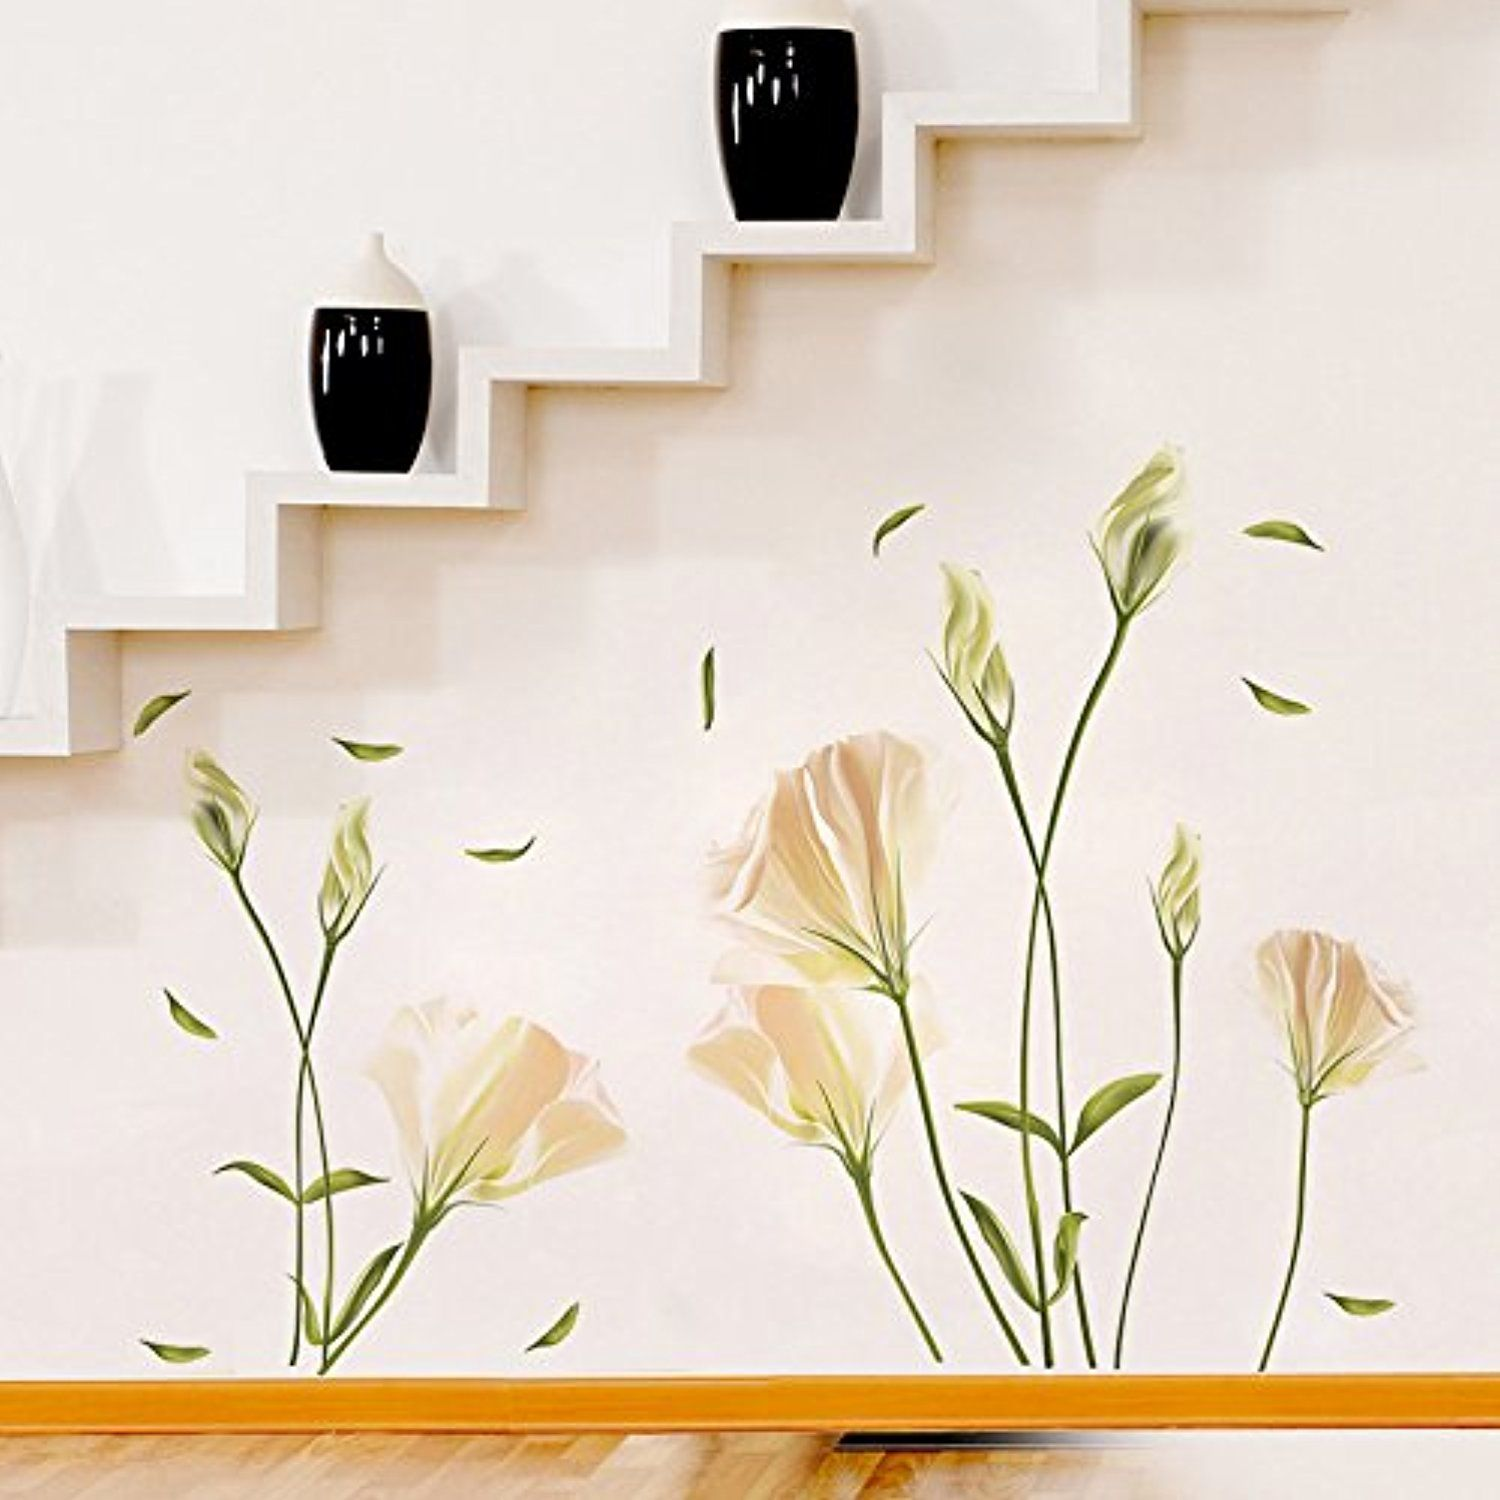 Flower wall stickers lilly wall decal flower vinyl wall d flower wall stickers lilly wall decal flower vinyl wall d mightylinksfo